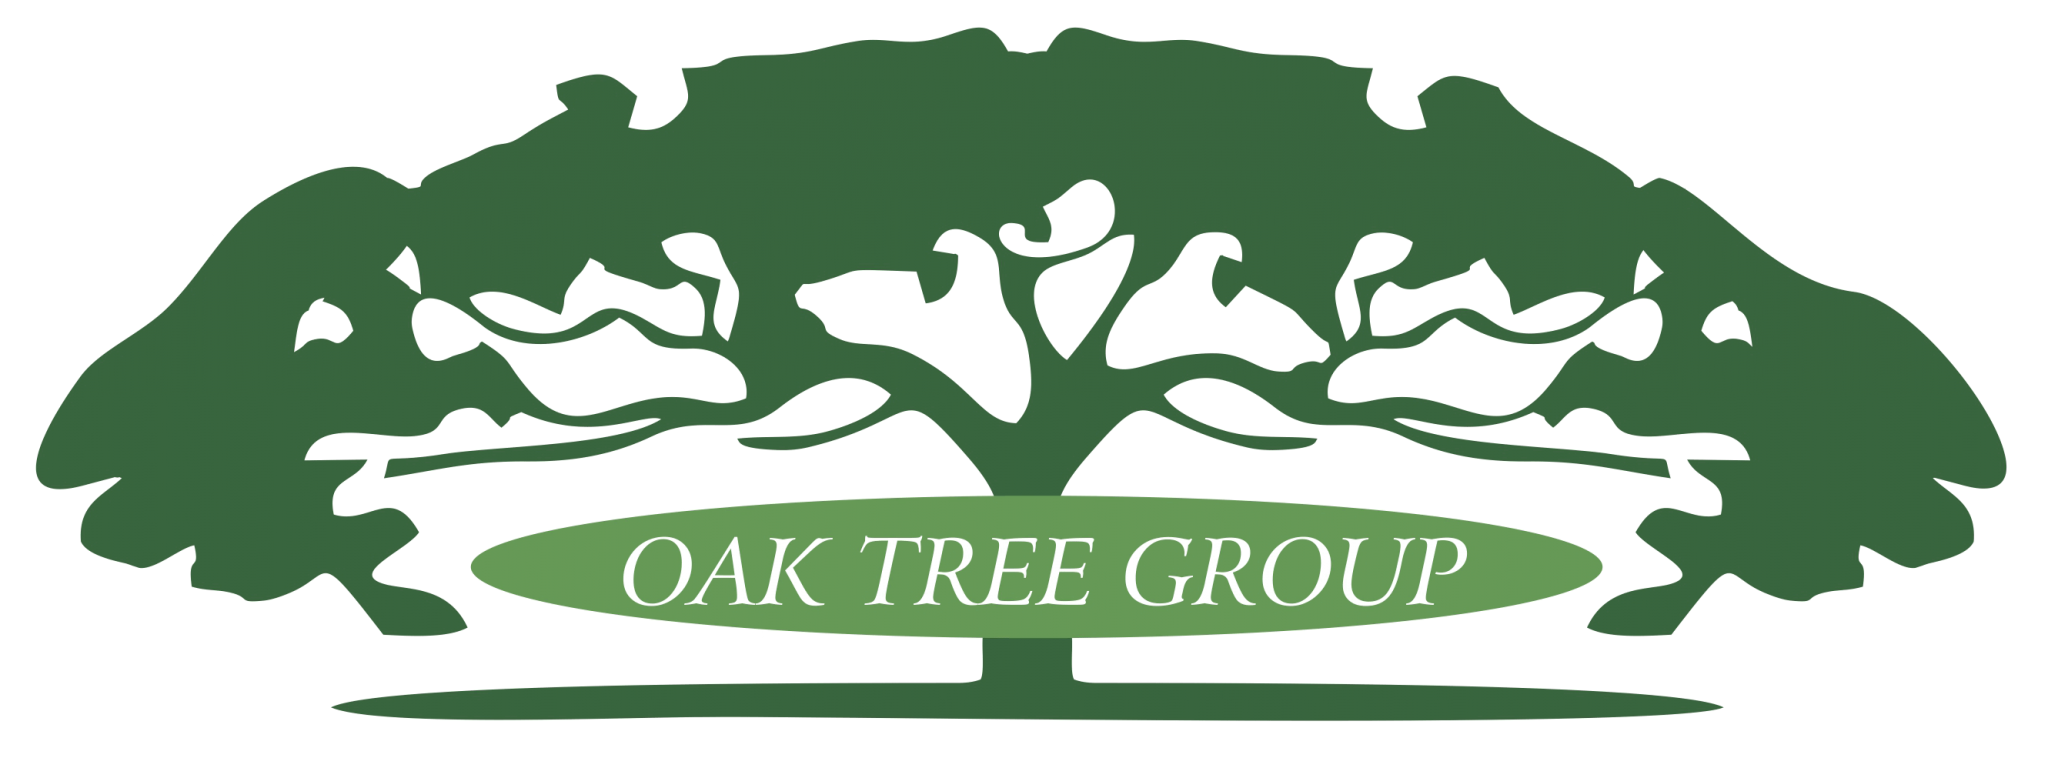 oak-tree-group-logo.png